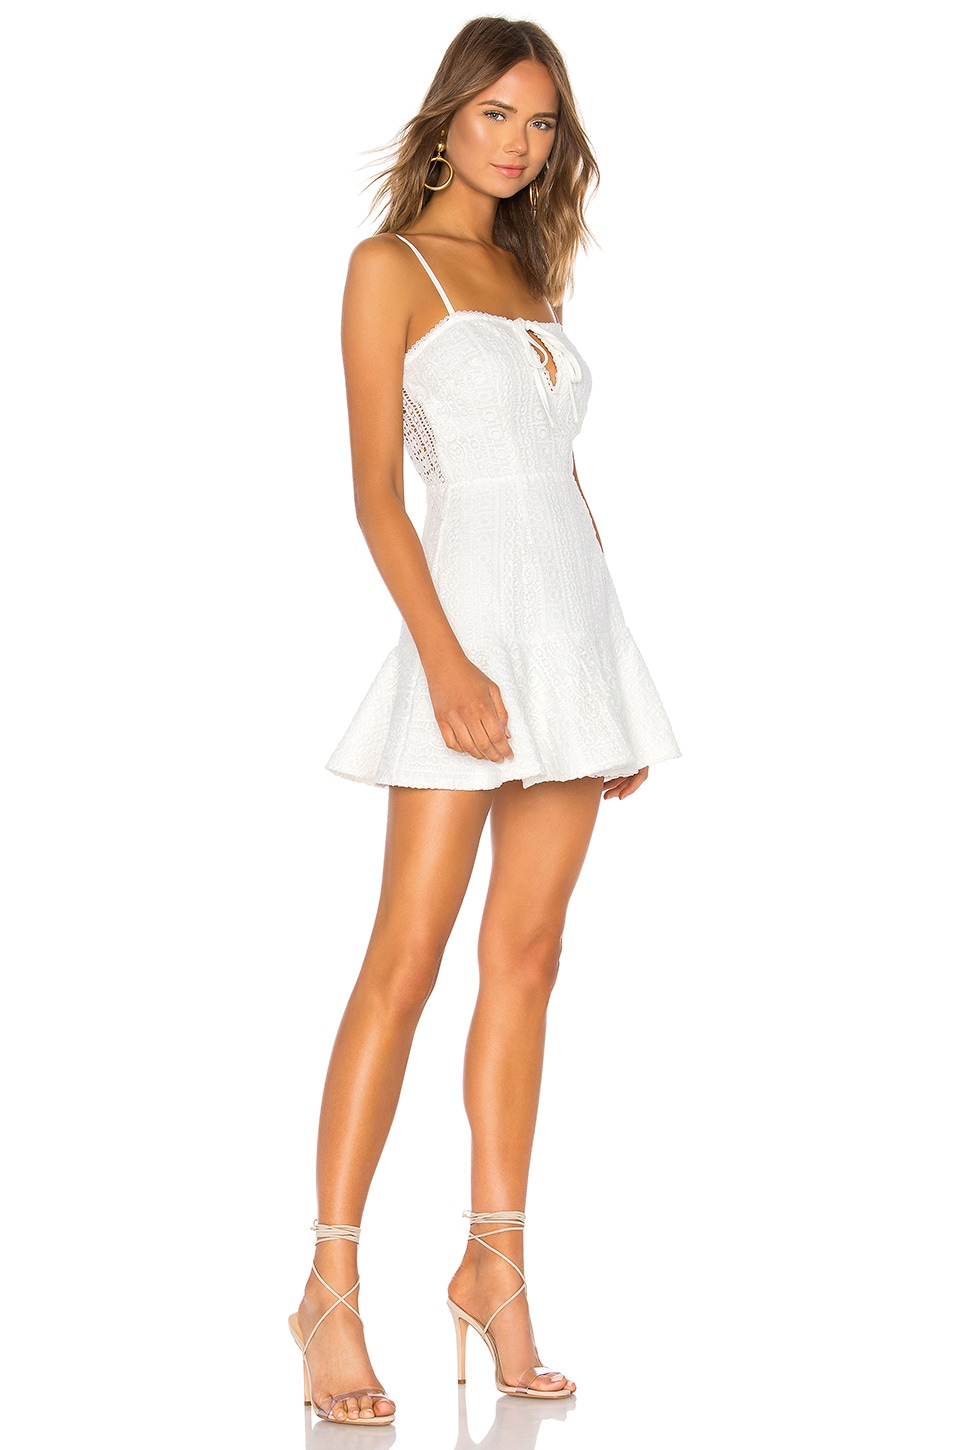 Del Crochet Keyhole Dress             superdown                                                                                                       CA$ 99.24 9